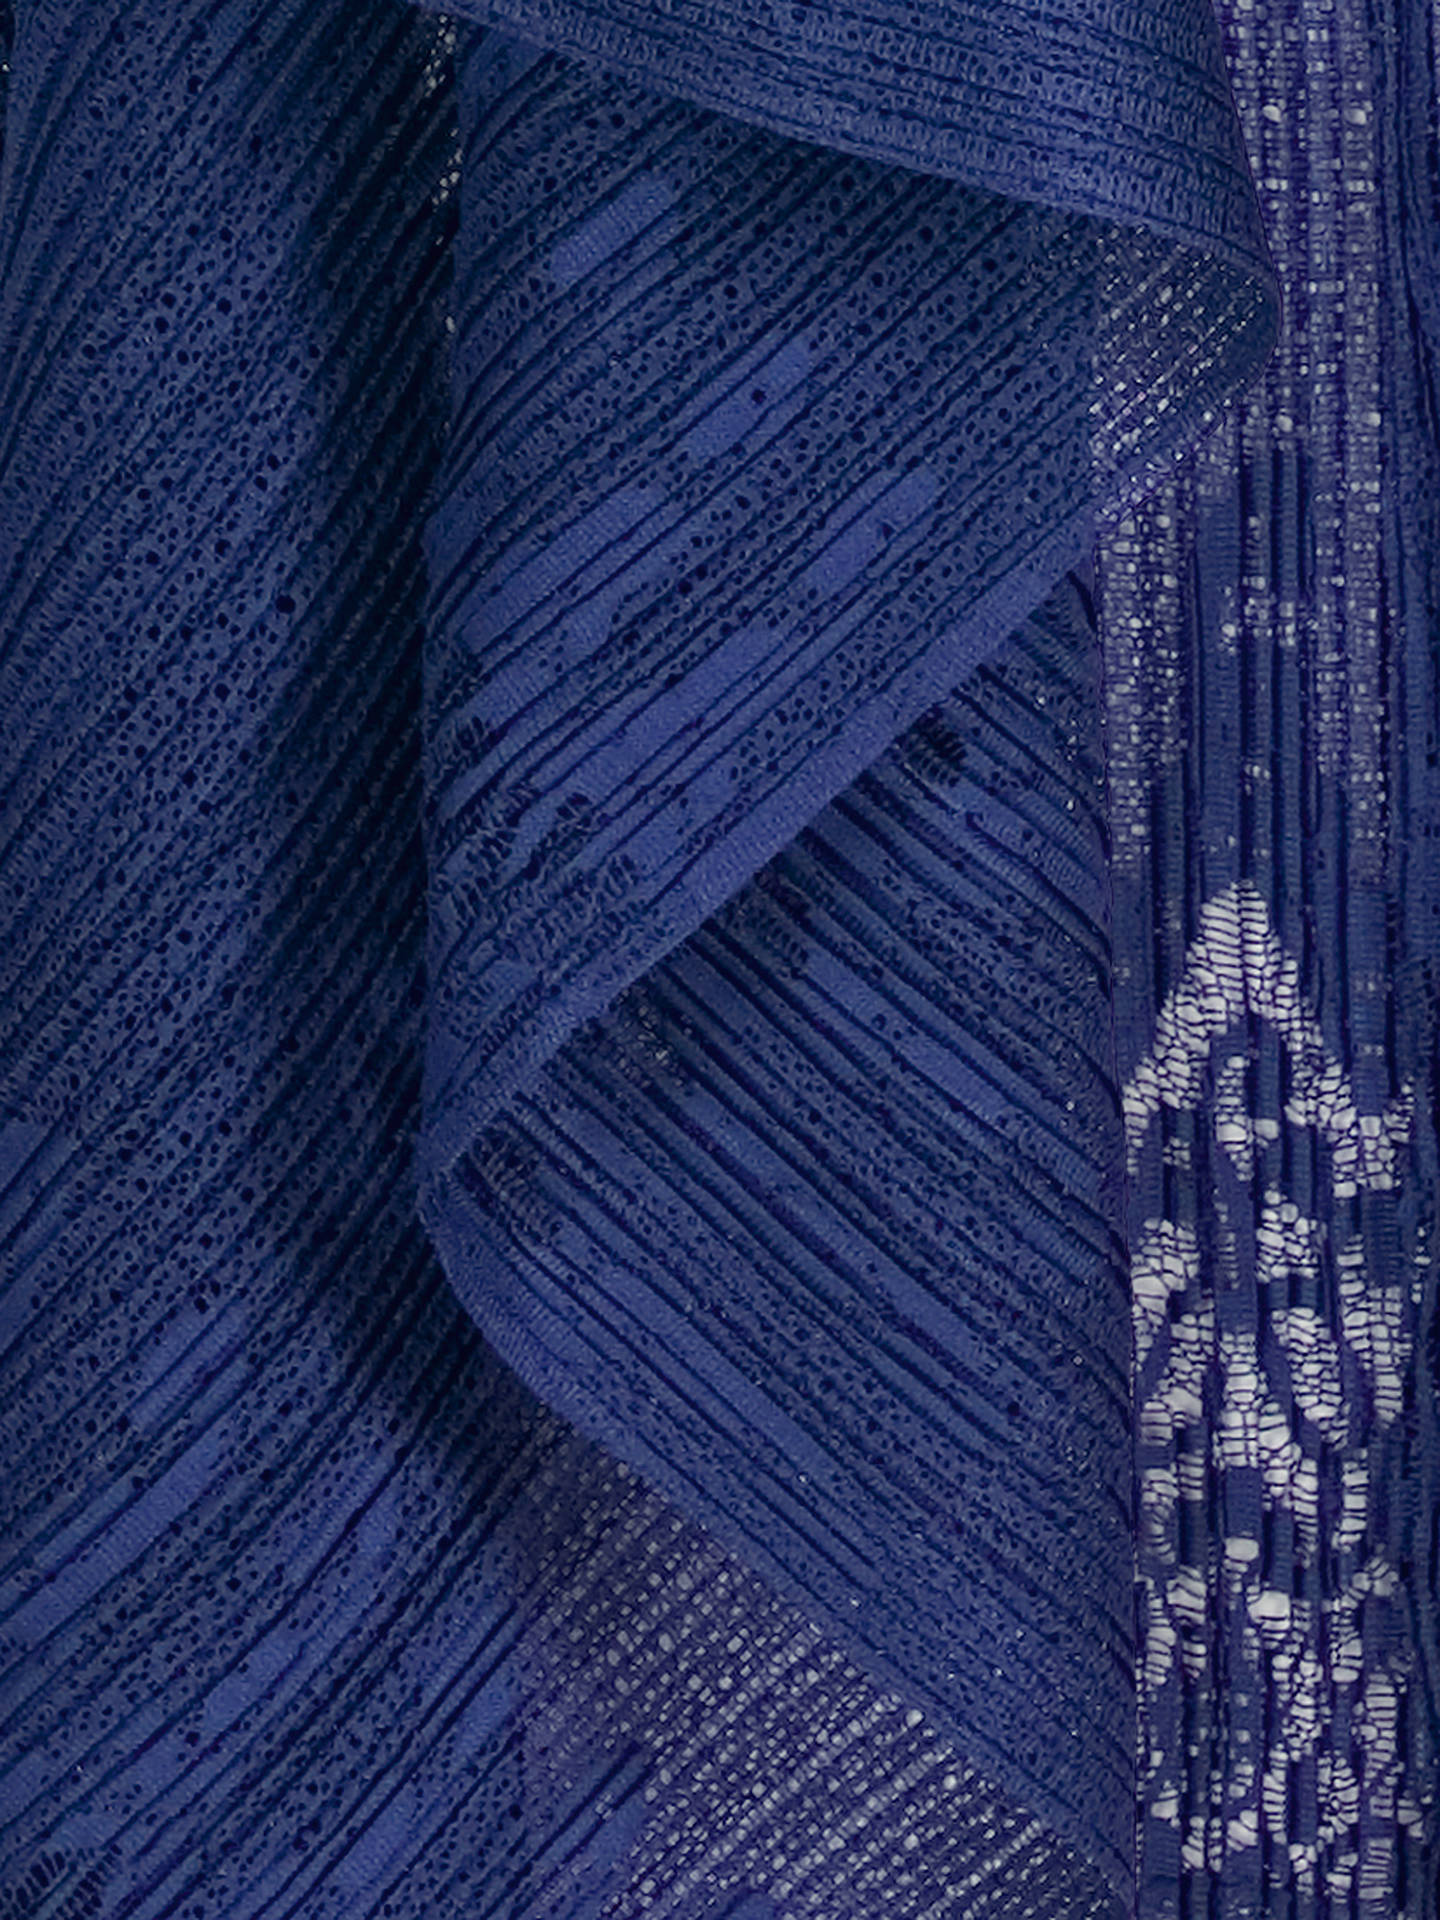 BuyChesca Border Lace Crush Pleat Waterfall Shrug, Royal Blue Online at johnlewis.com